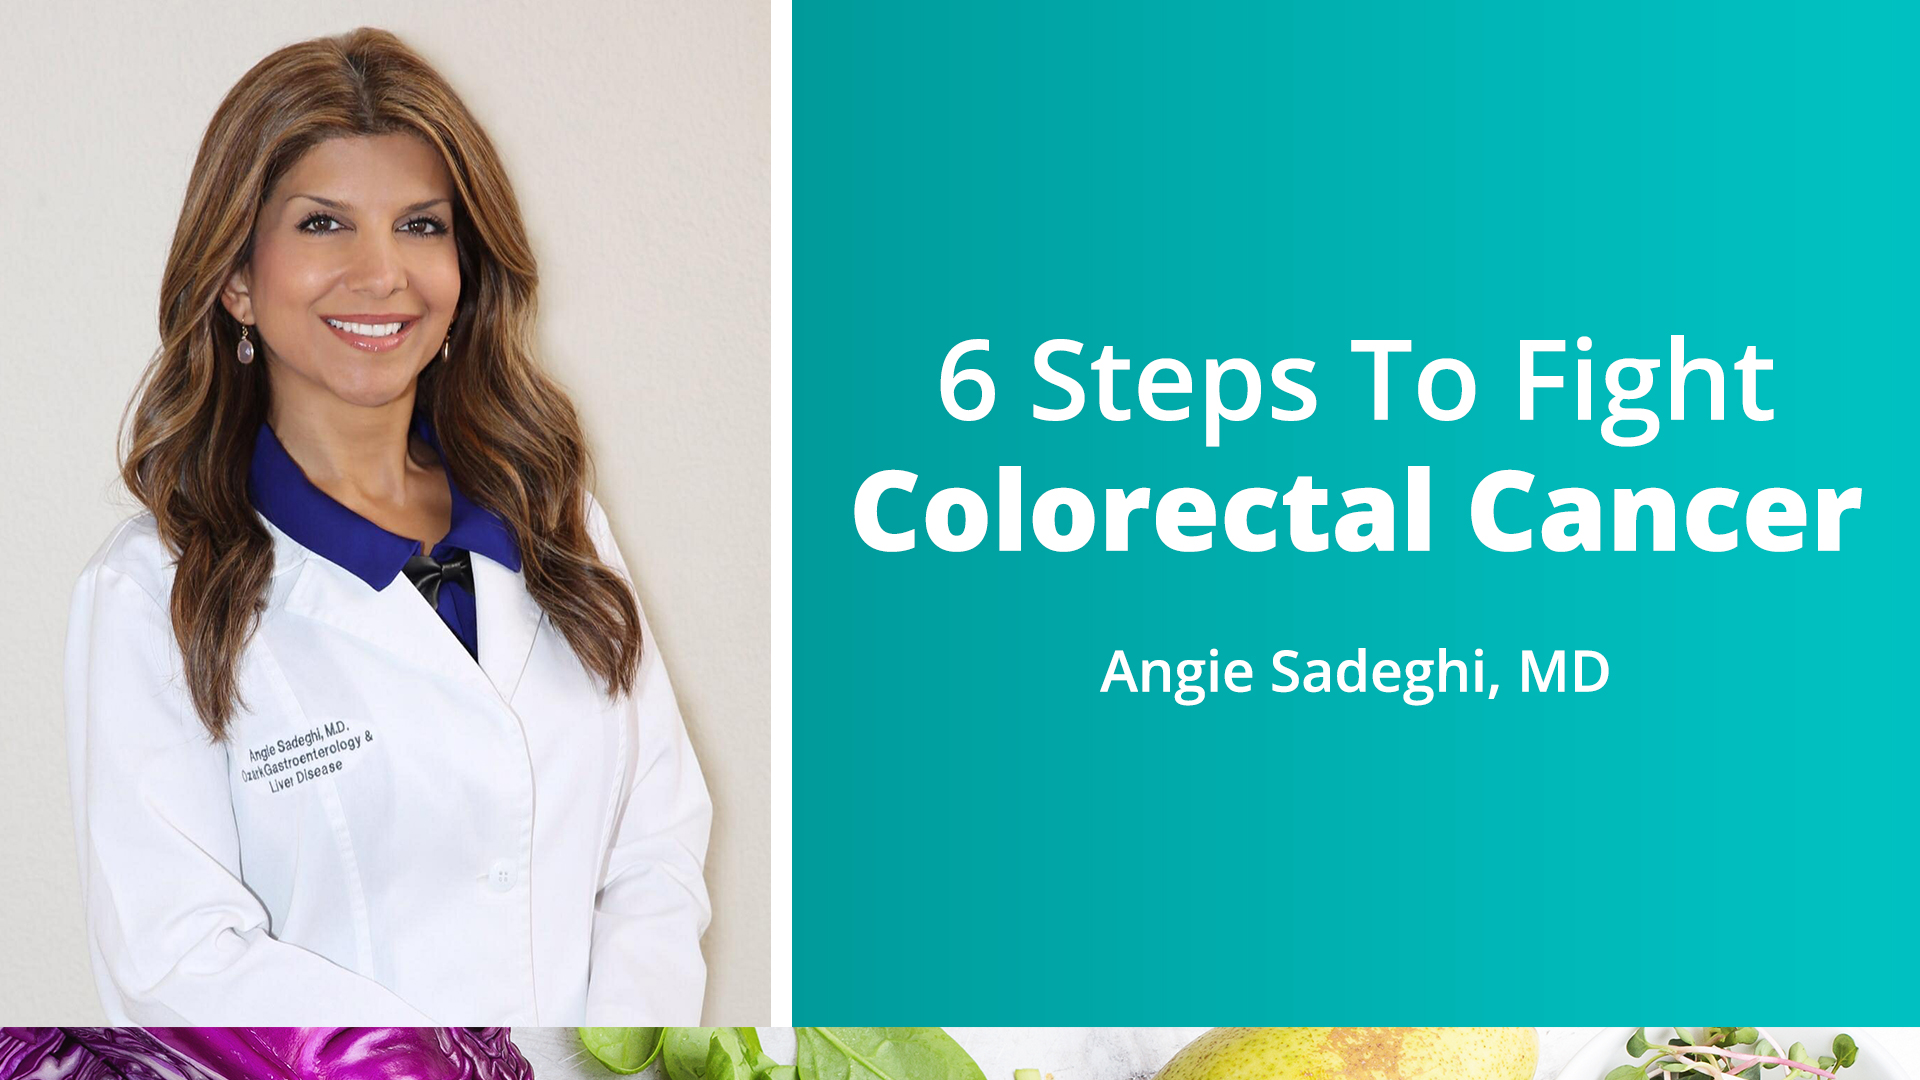 6 Steps To Fight Colorectal Cancer